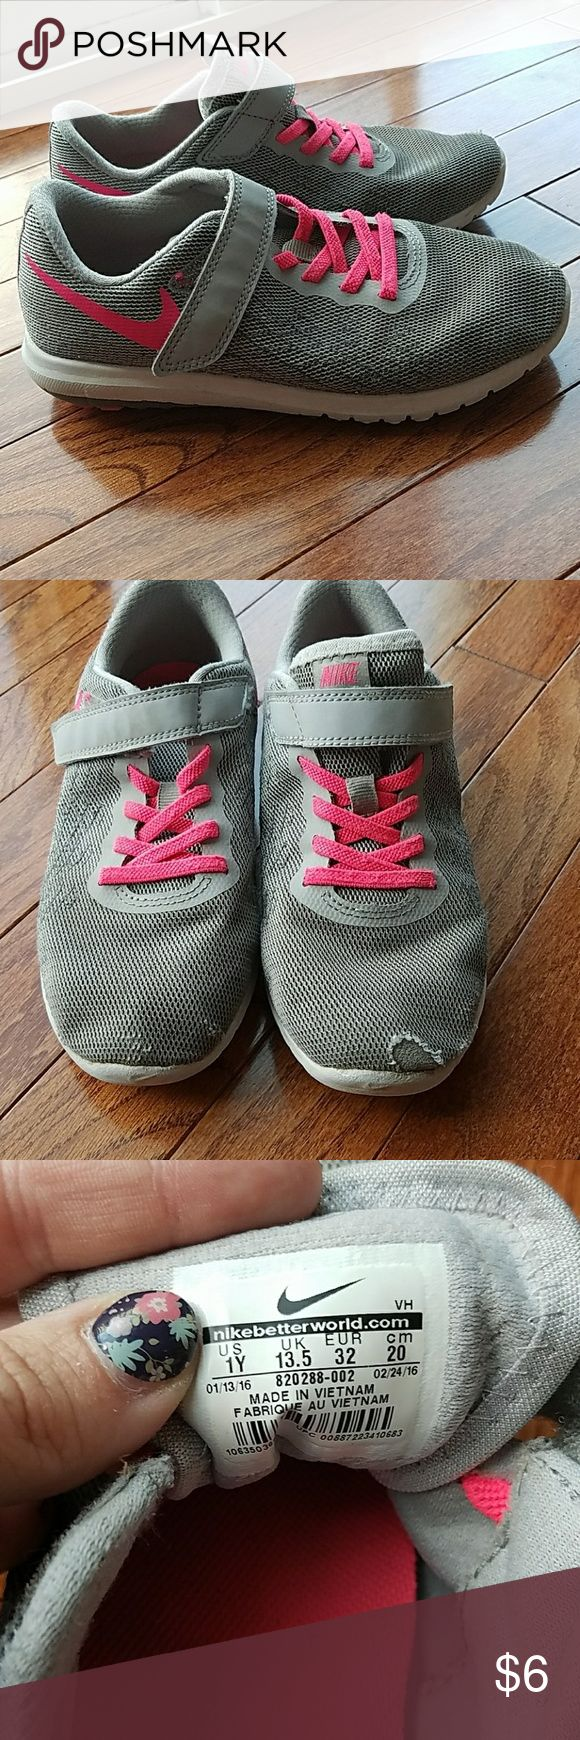 Girl's Nike Flex sneakers Well loved Nike's flex sneakers with lots of life left. Some wear on the toes but otherwise in good used condition. Nike Shoes Sneakers